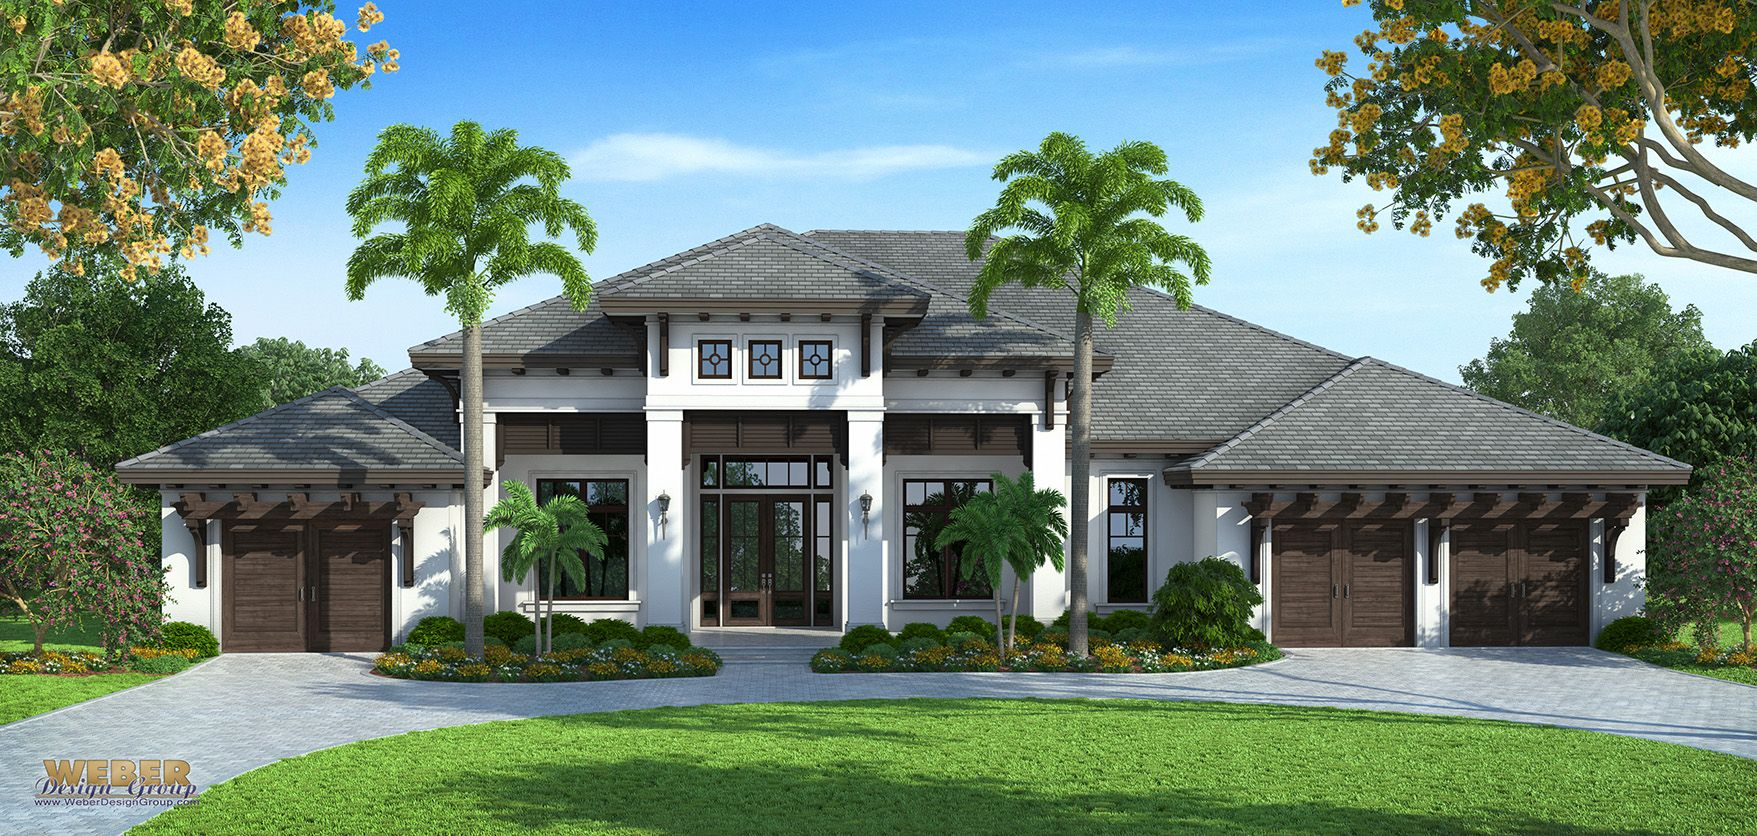 Transitional west indies style house plans by weber design for West coast home plans